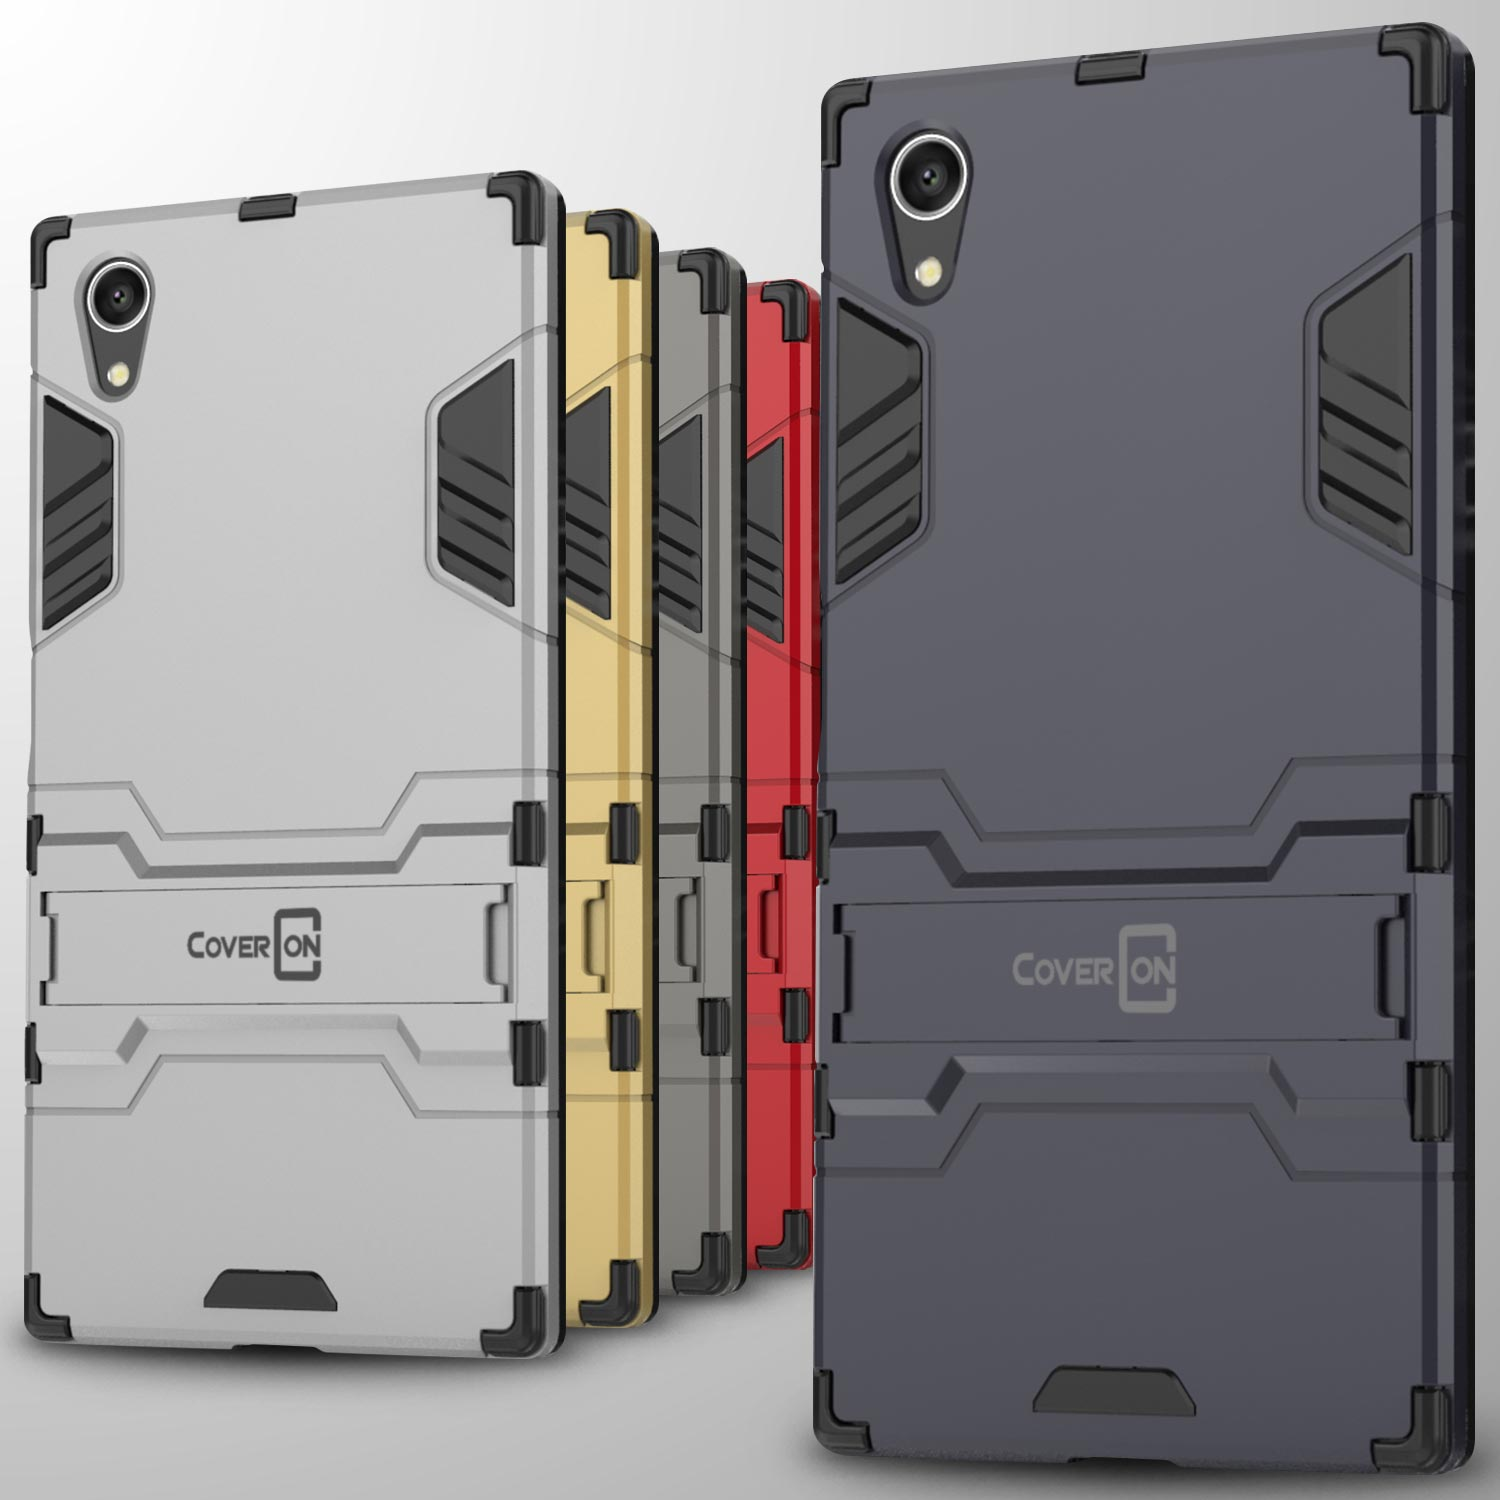 factory authentic ba088 6f988 For Sony Xperia XA1 Plus Case Hard Kickstand Protective Slim Phone ...